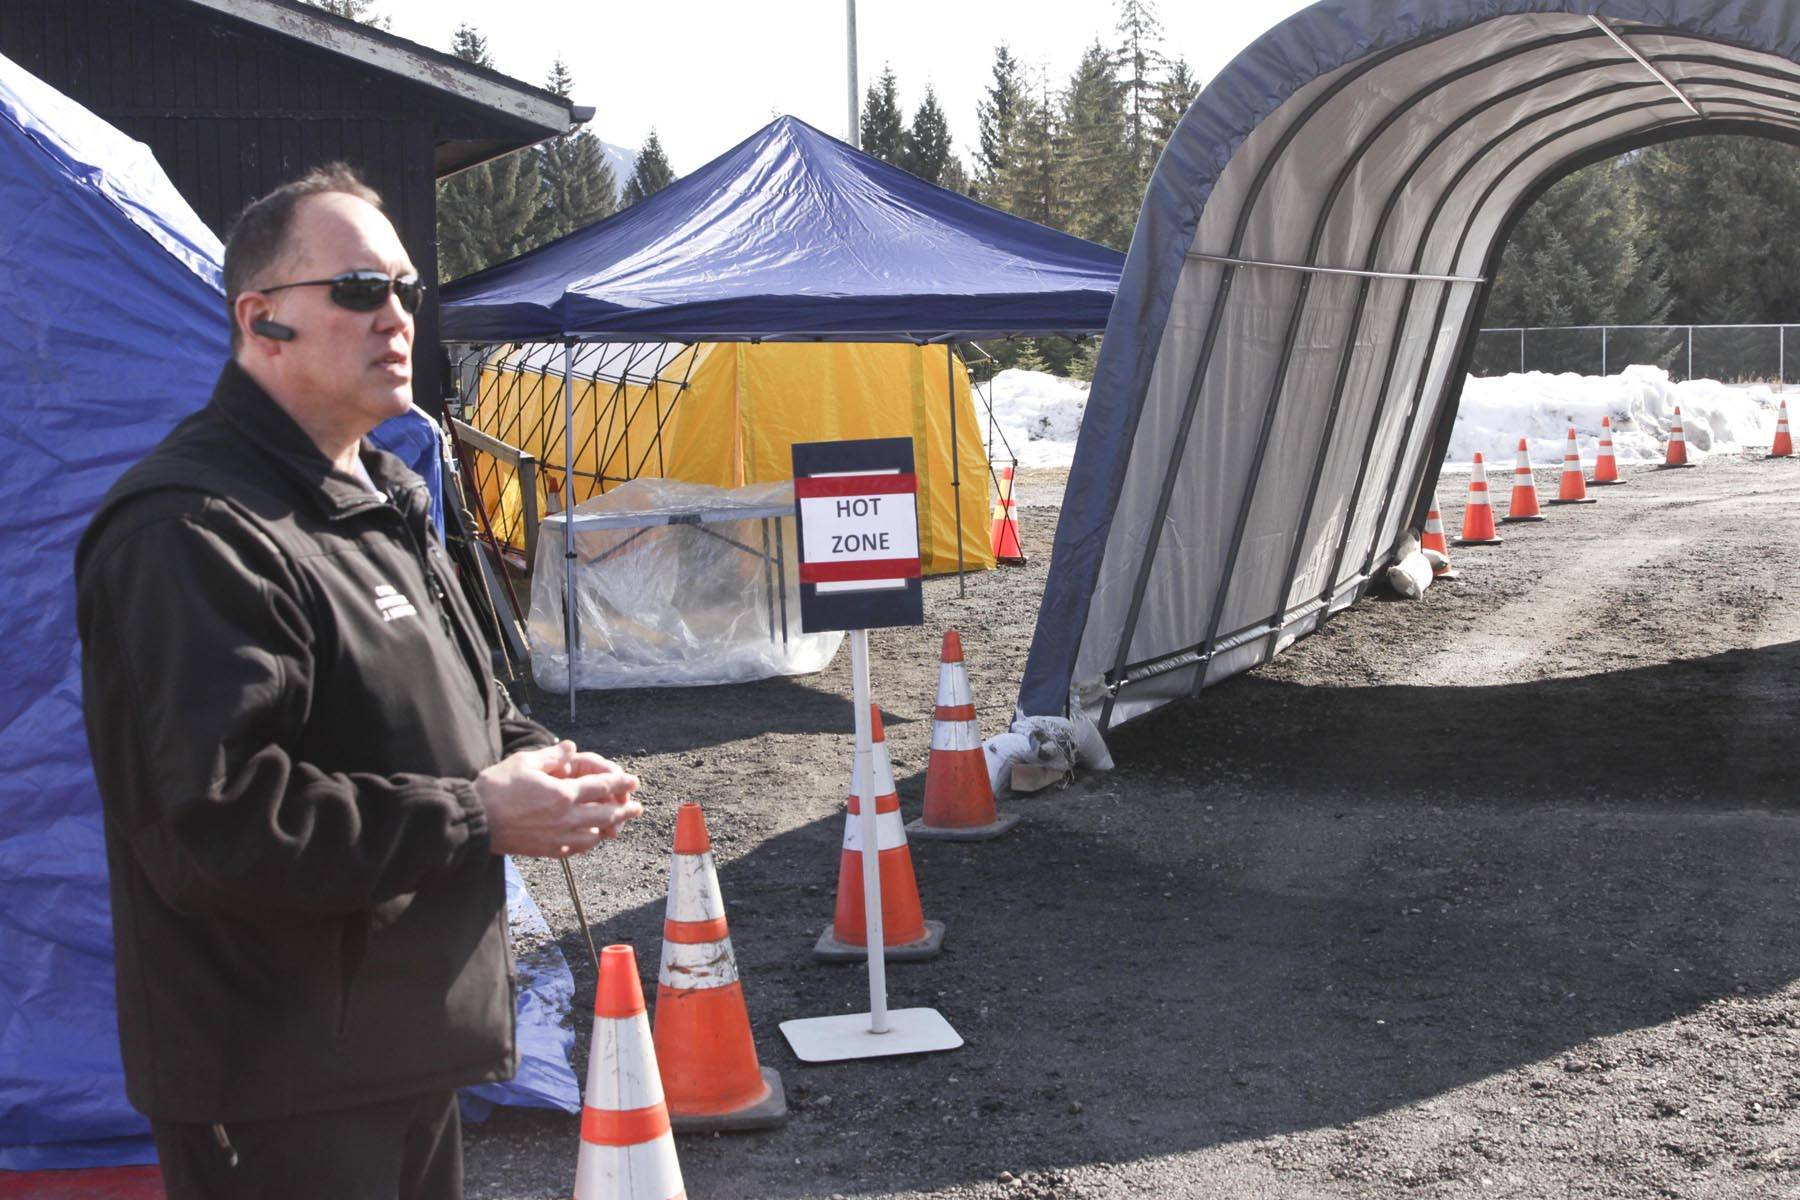 Michael S. Lockett | Juneau Empire                                  Capital City Fire/Rescue Community Community Assistance Response and Emergency Services manager Joe Mischler talks about the appointment-based drive-thru testing site located at the Hagevig Regional Fire Training Center for possible coronavirus victims on Tuesday.